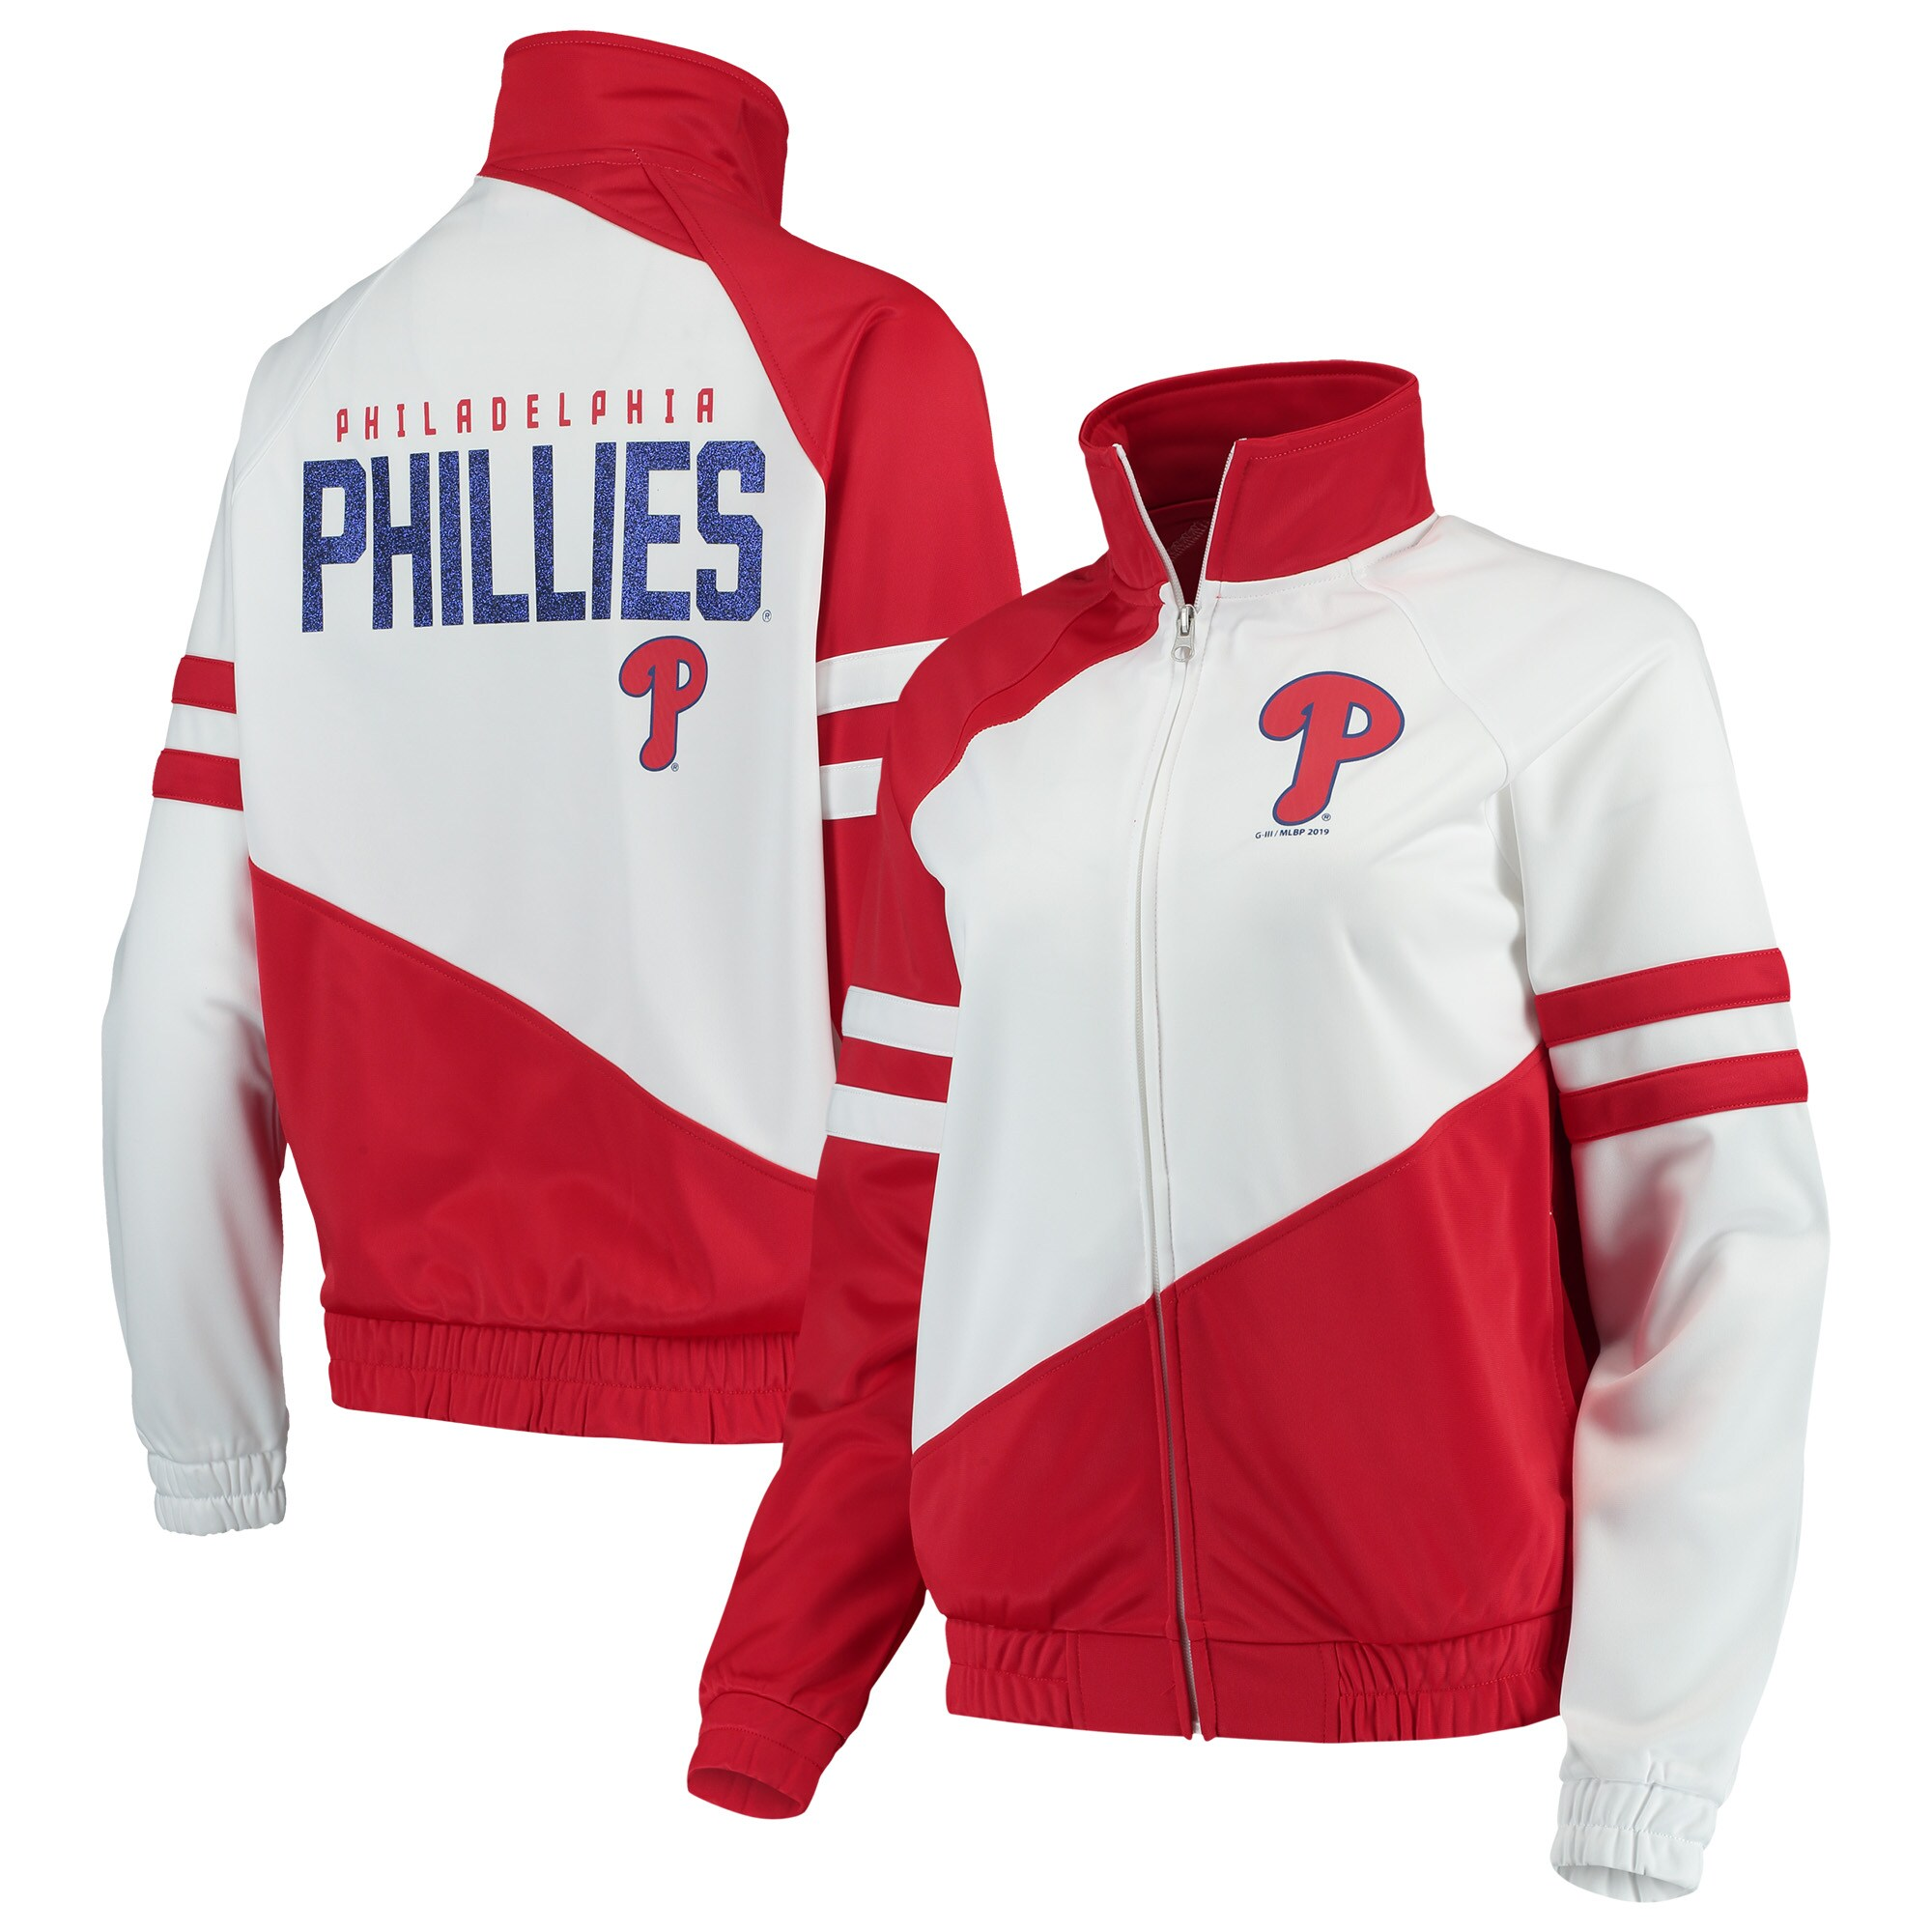 Philadelphia Phillies G-III 4Her by Carl Banks Women's Perfect Pitch Track Jacket - Red/White